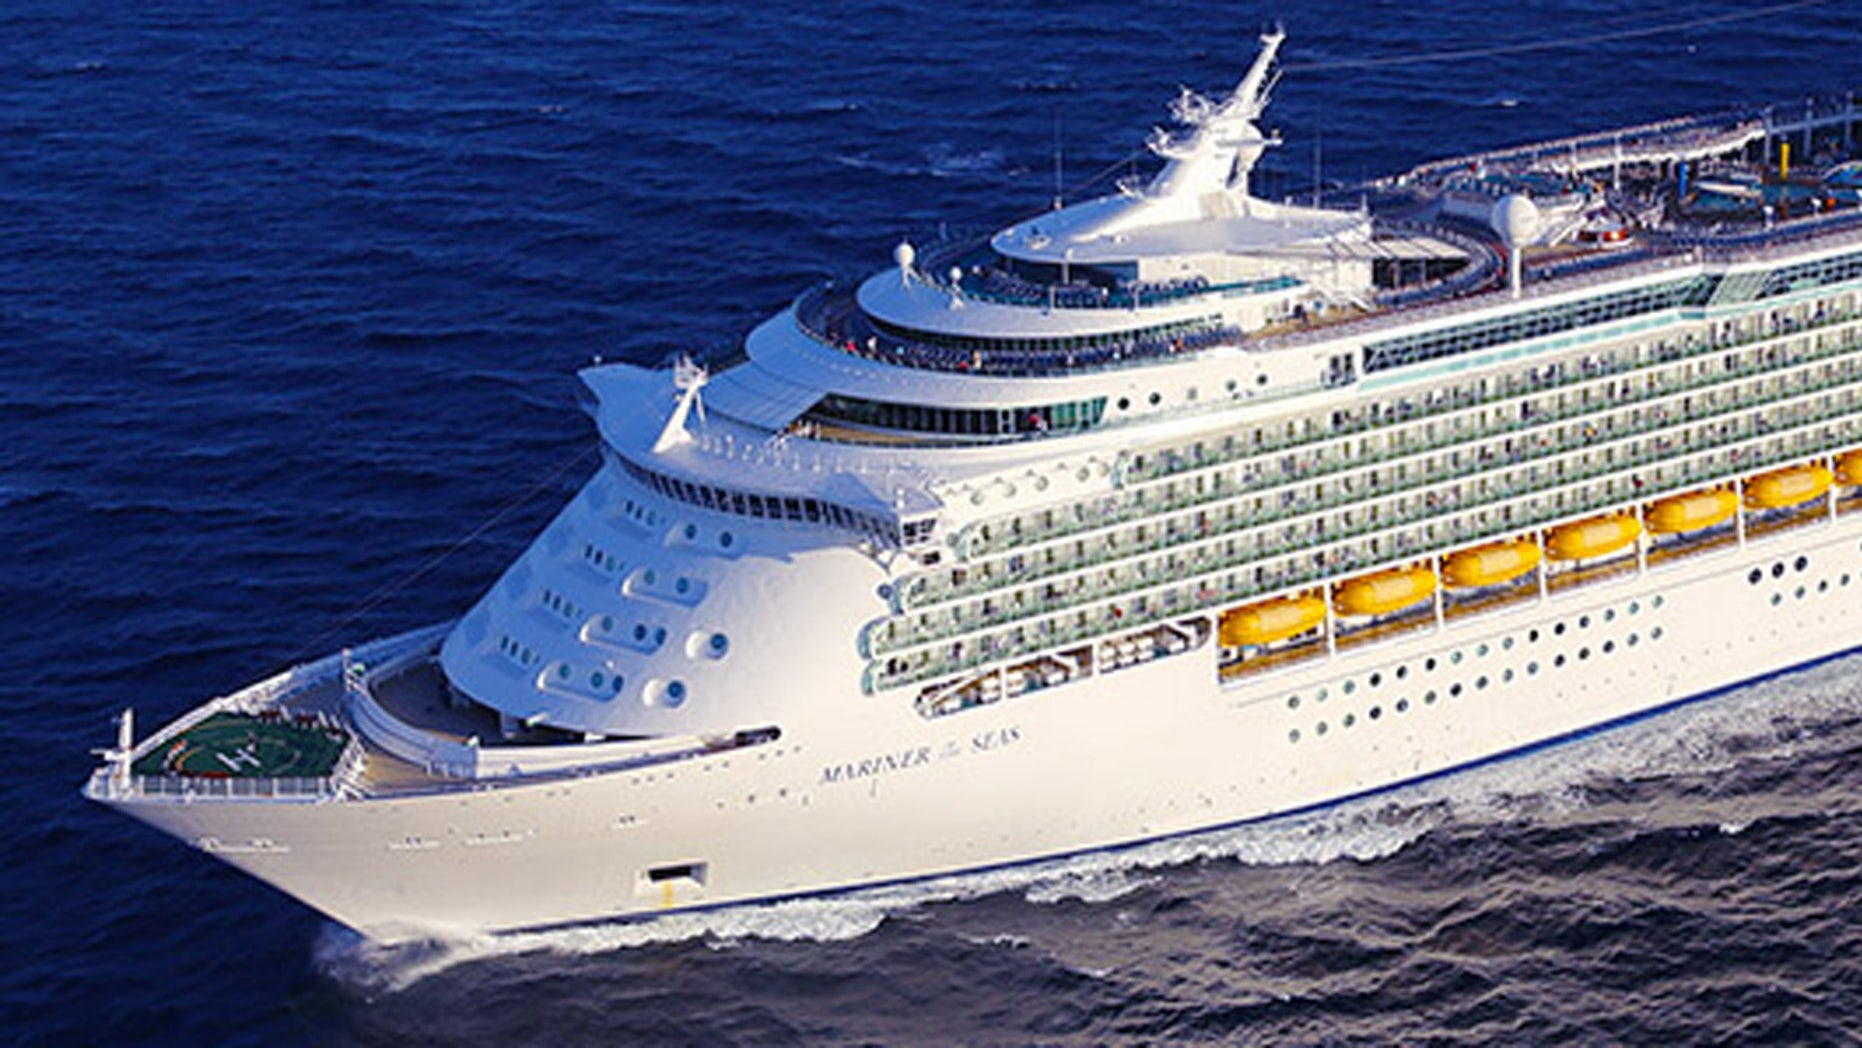 Royal Caribbean's Mariner of the Seas sails cruisers to different Asian countries.